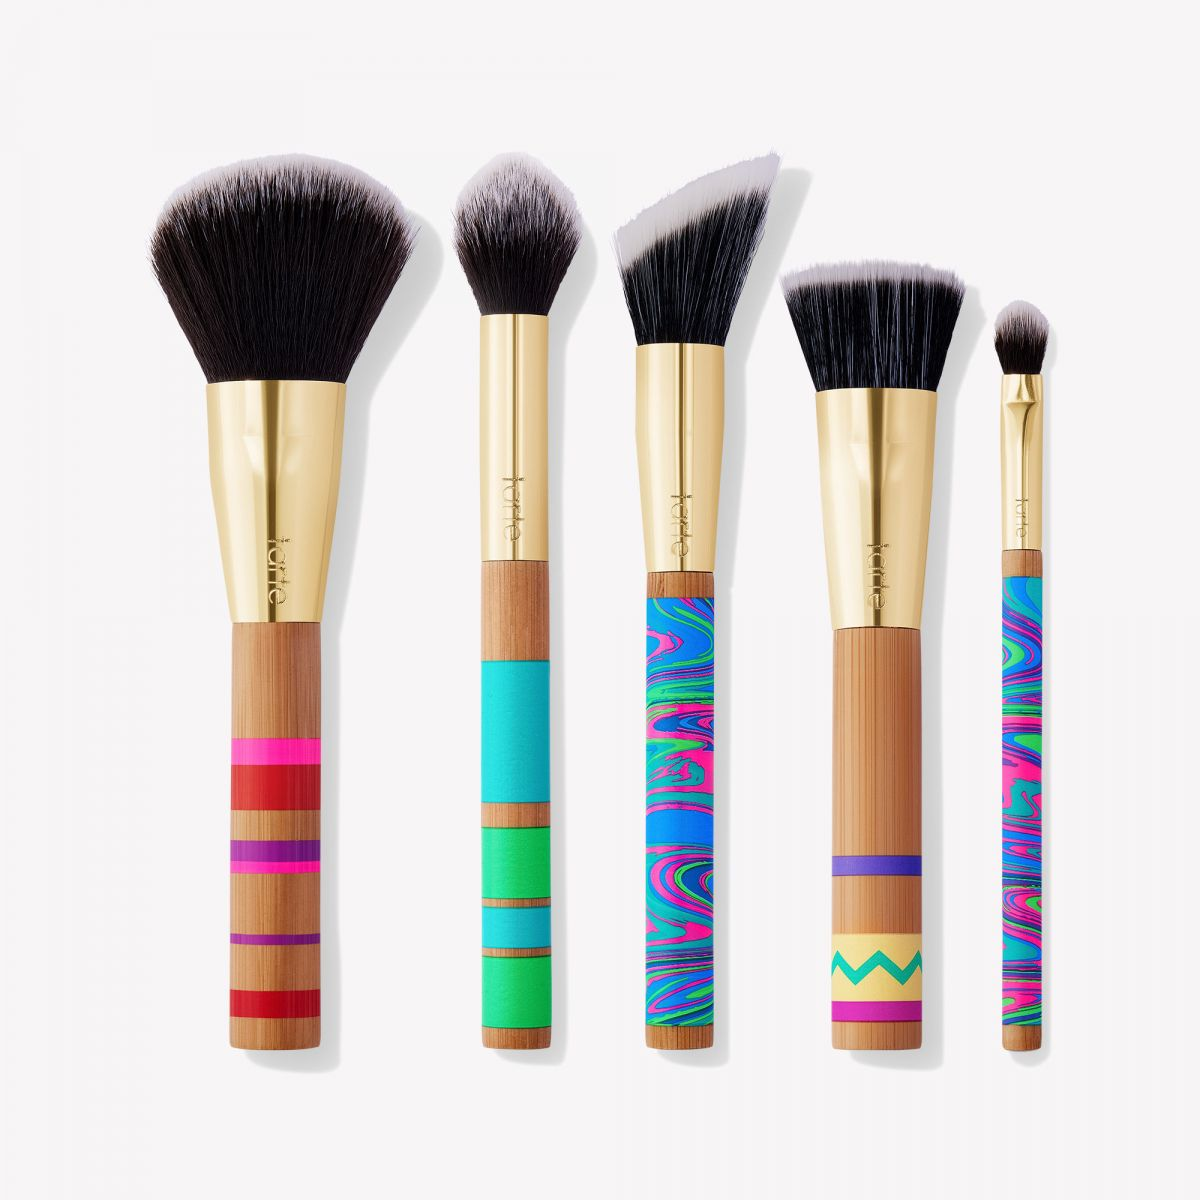 Набор кистей Tarte Cosmetics - peace, love, paint brush set